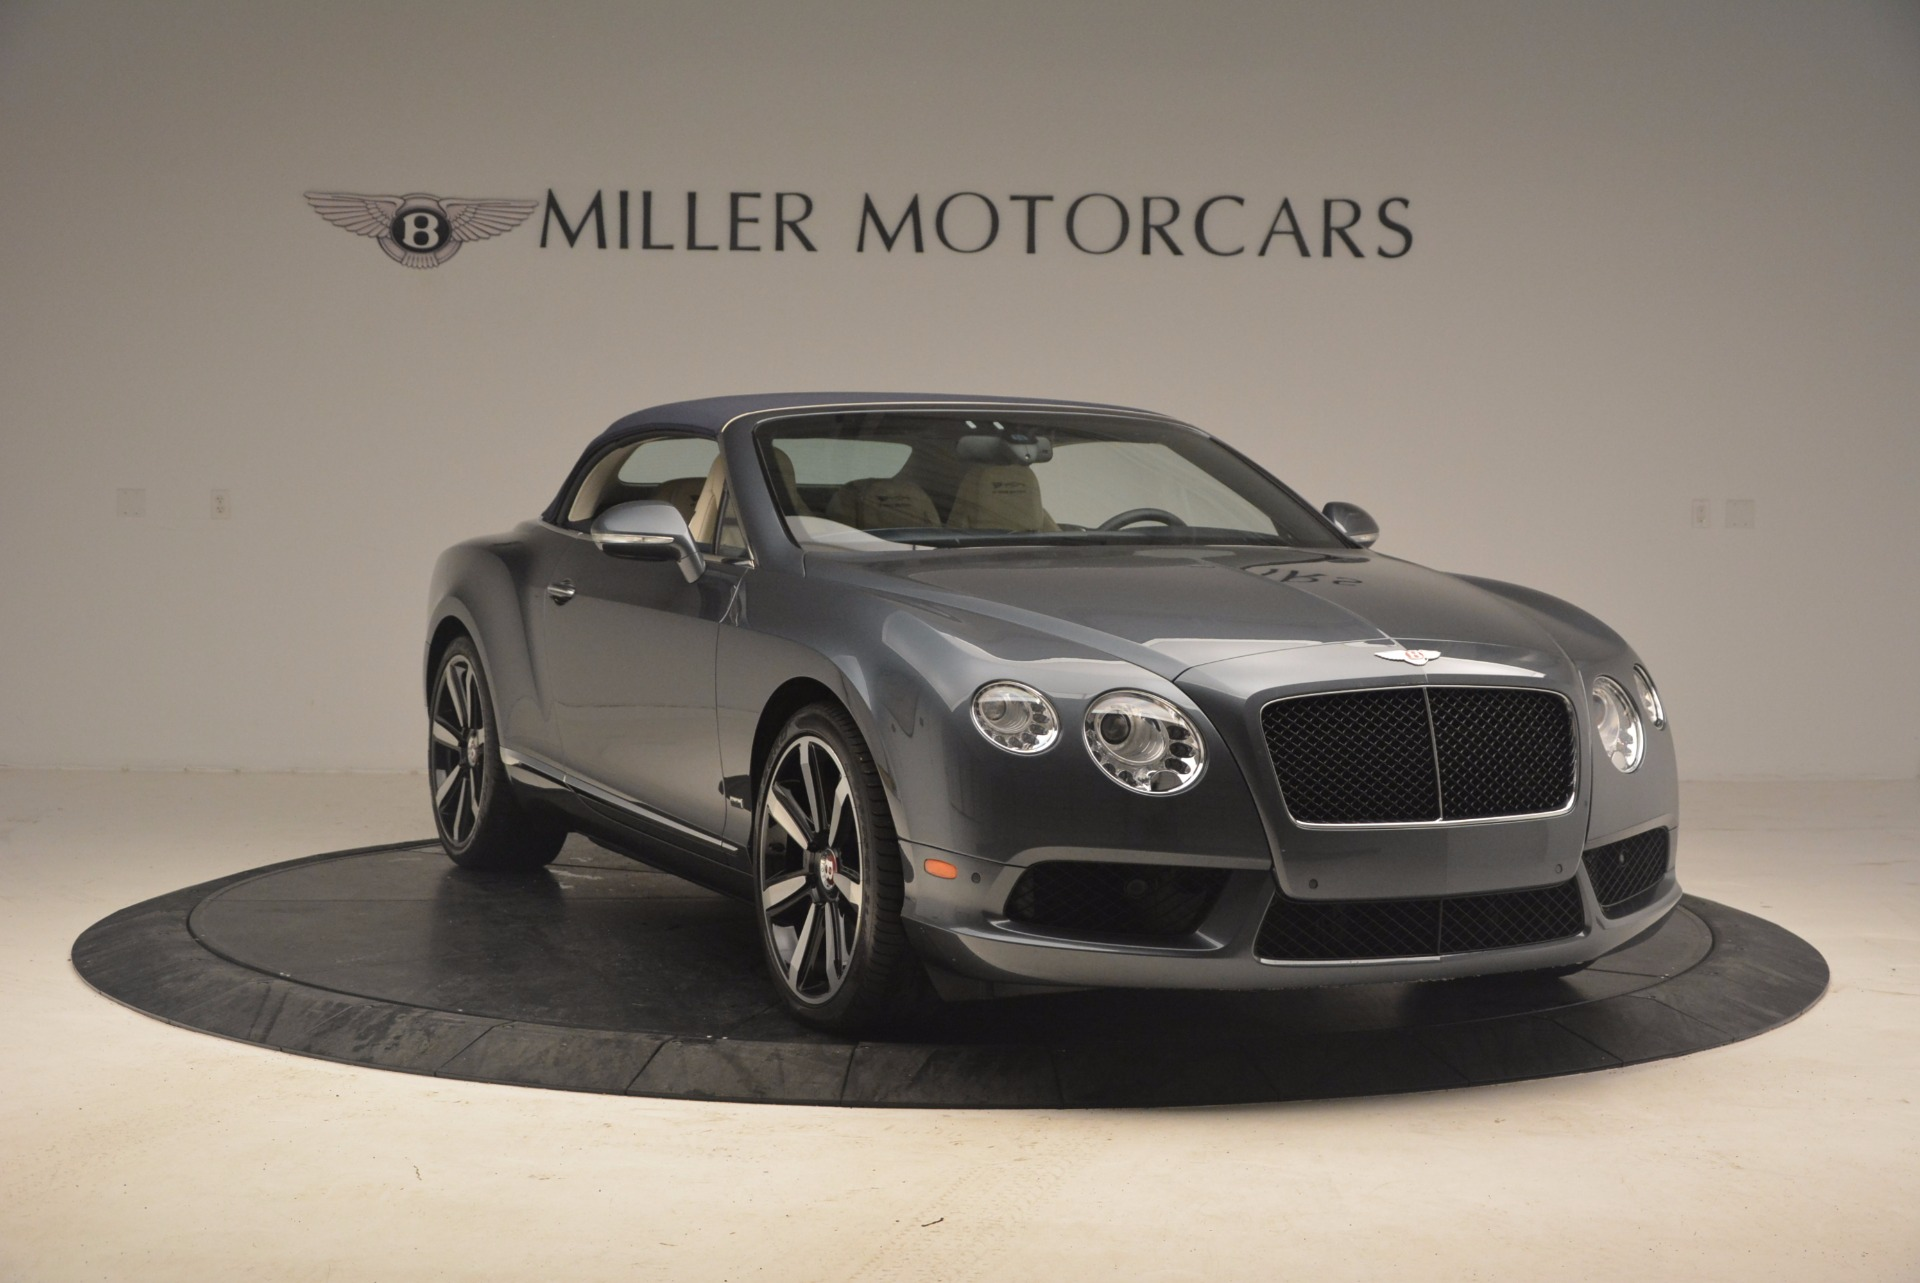 Used 2013 Bentley Continental GT V8 Le Mans Edition, 1 of 48 For Sale In Westport, CT 1288_p24